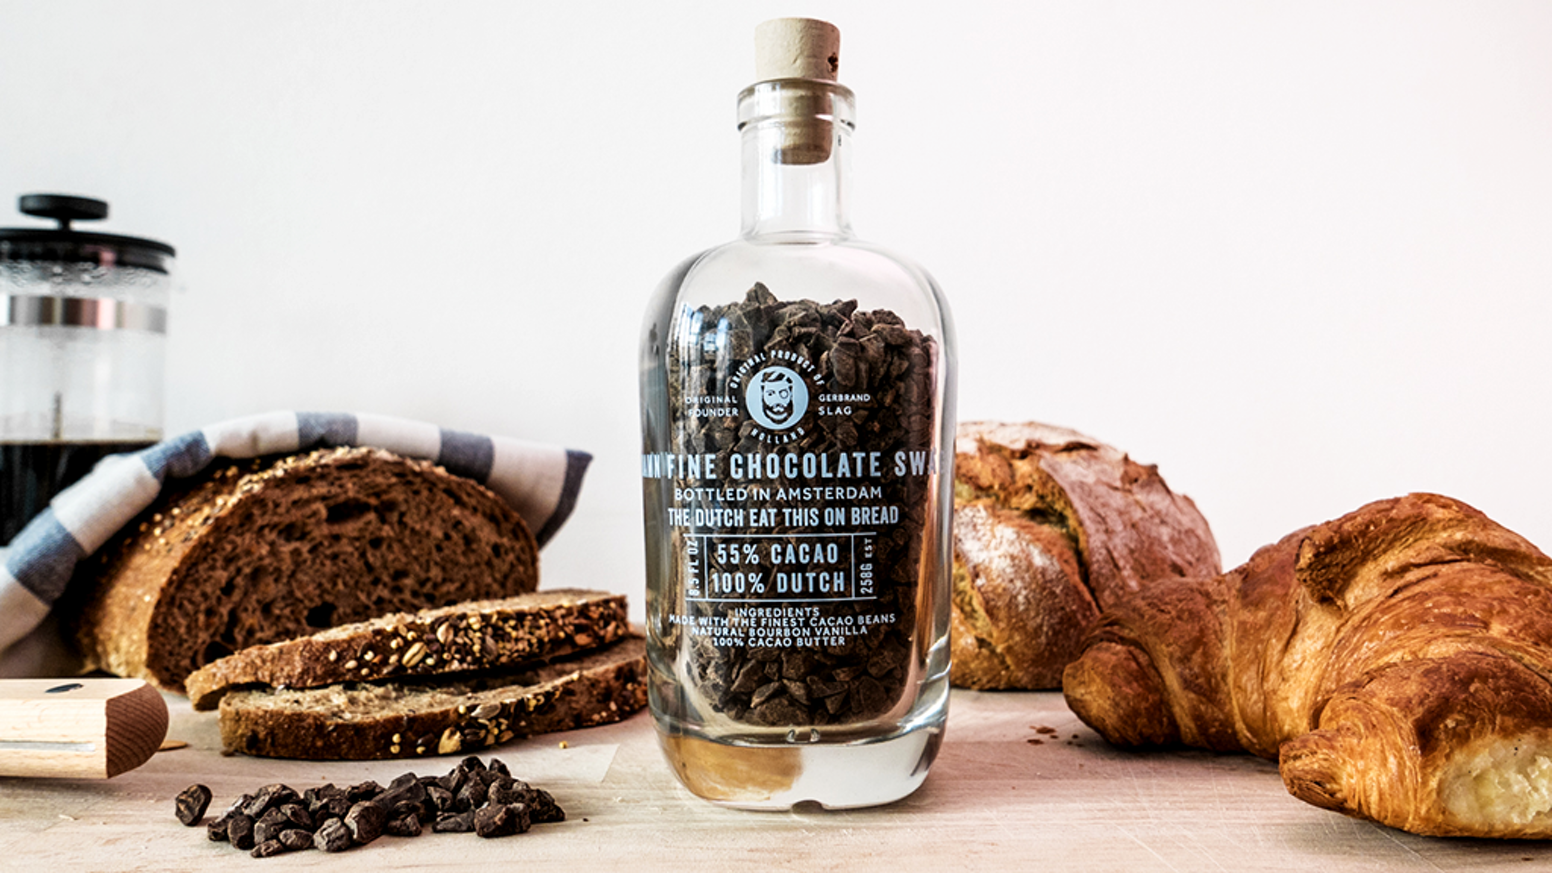 Hagelswag is the world's finest chocolate on bread, bottled in Amsterdam. A Dutch tradition, ready to be shared with the world.